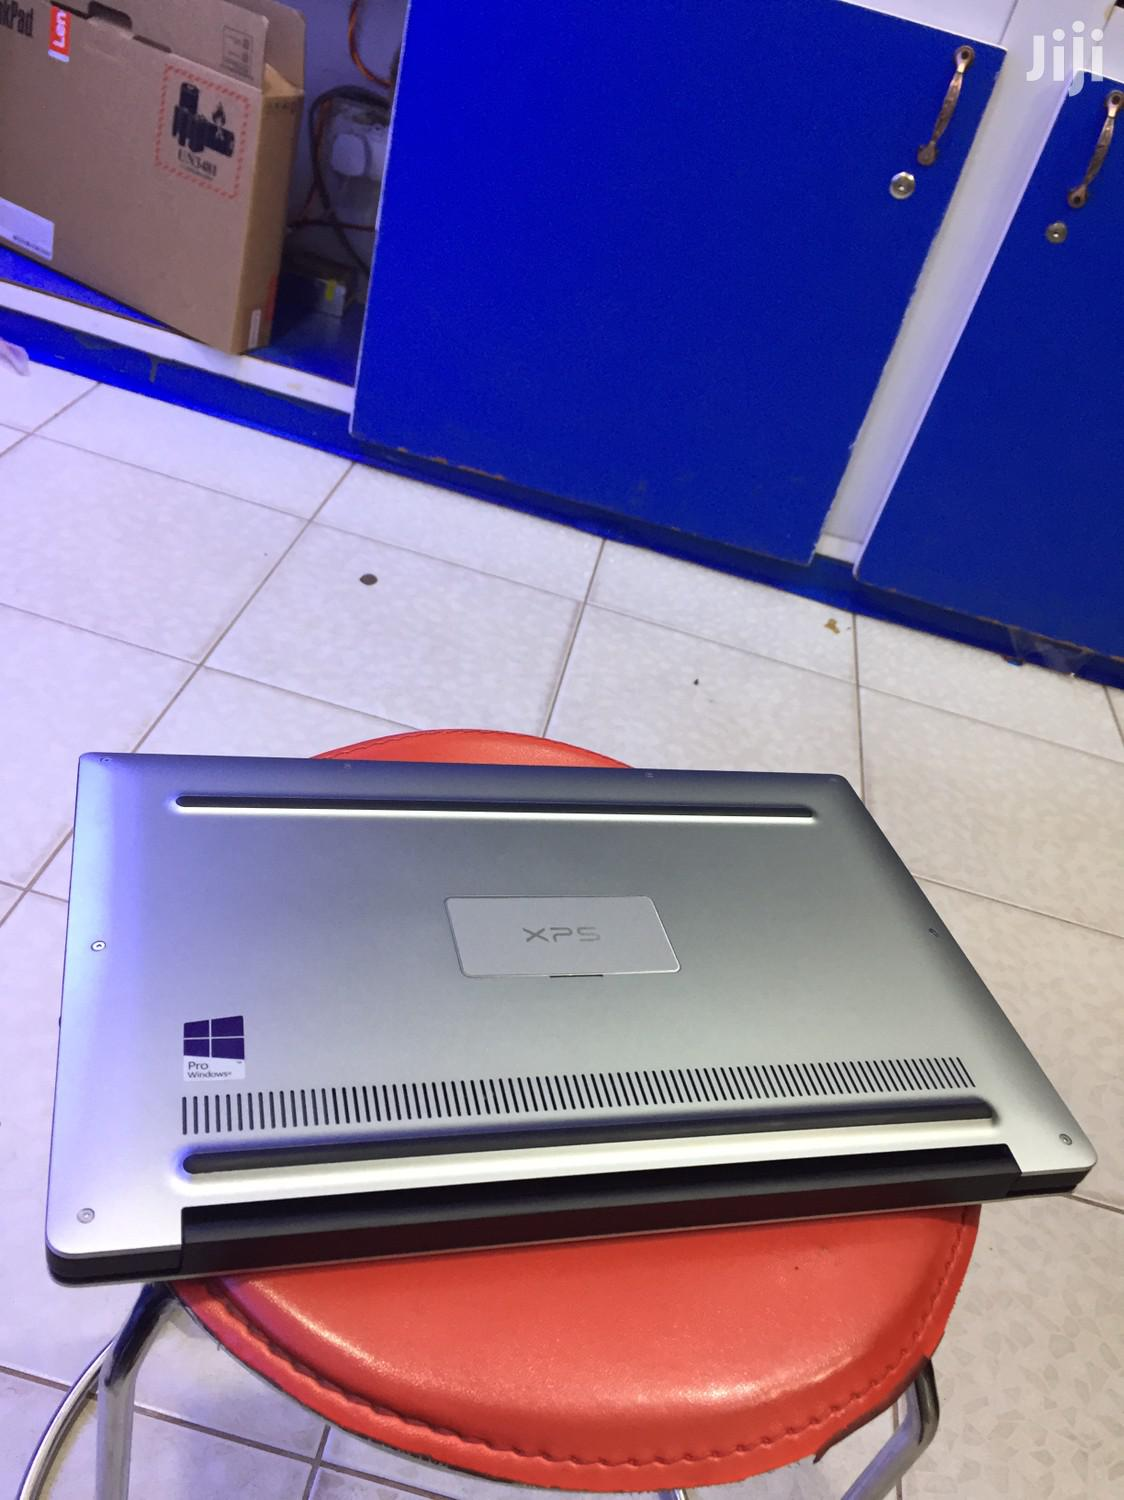 New Laptop Dell XPS 13 9360 16GB Intel Core i7 SSD 512GB   Laptops & Computers for sale in Kampala, Central Region, Uganda